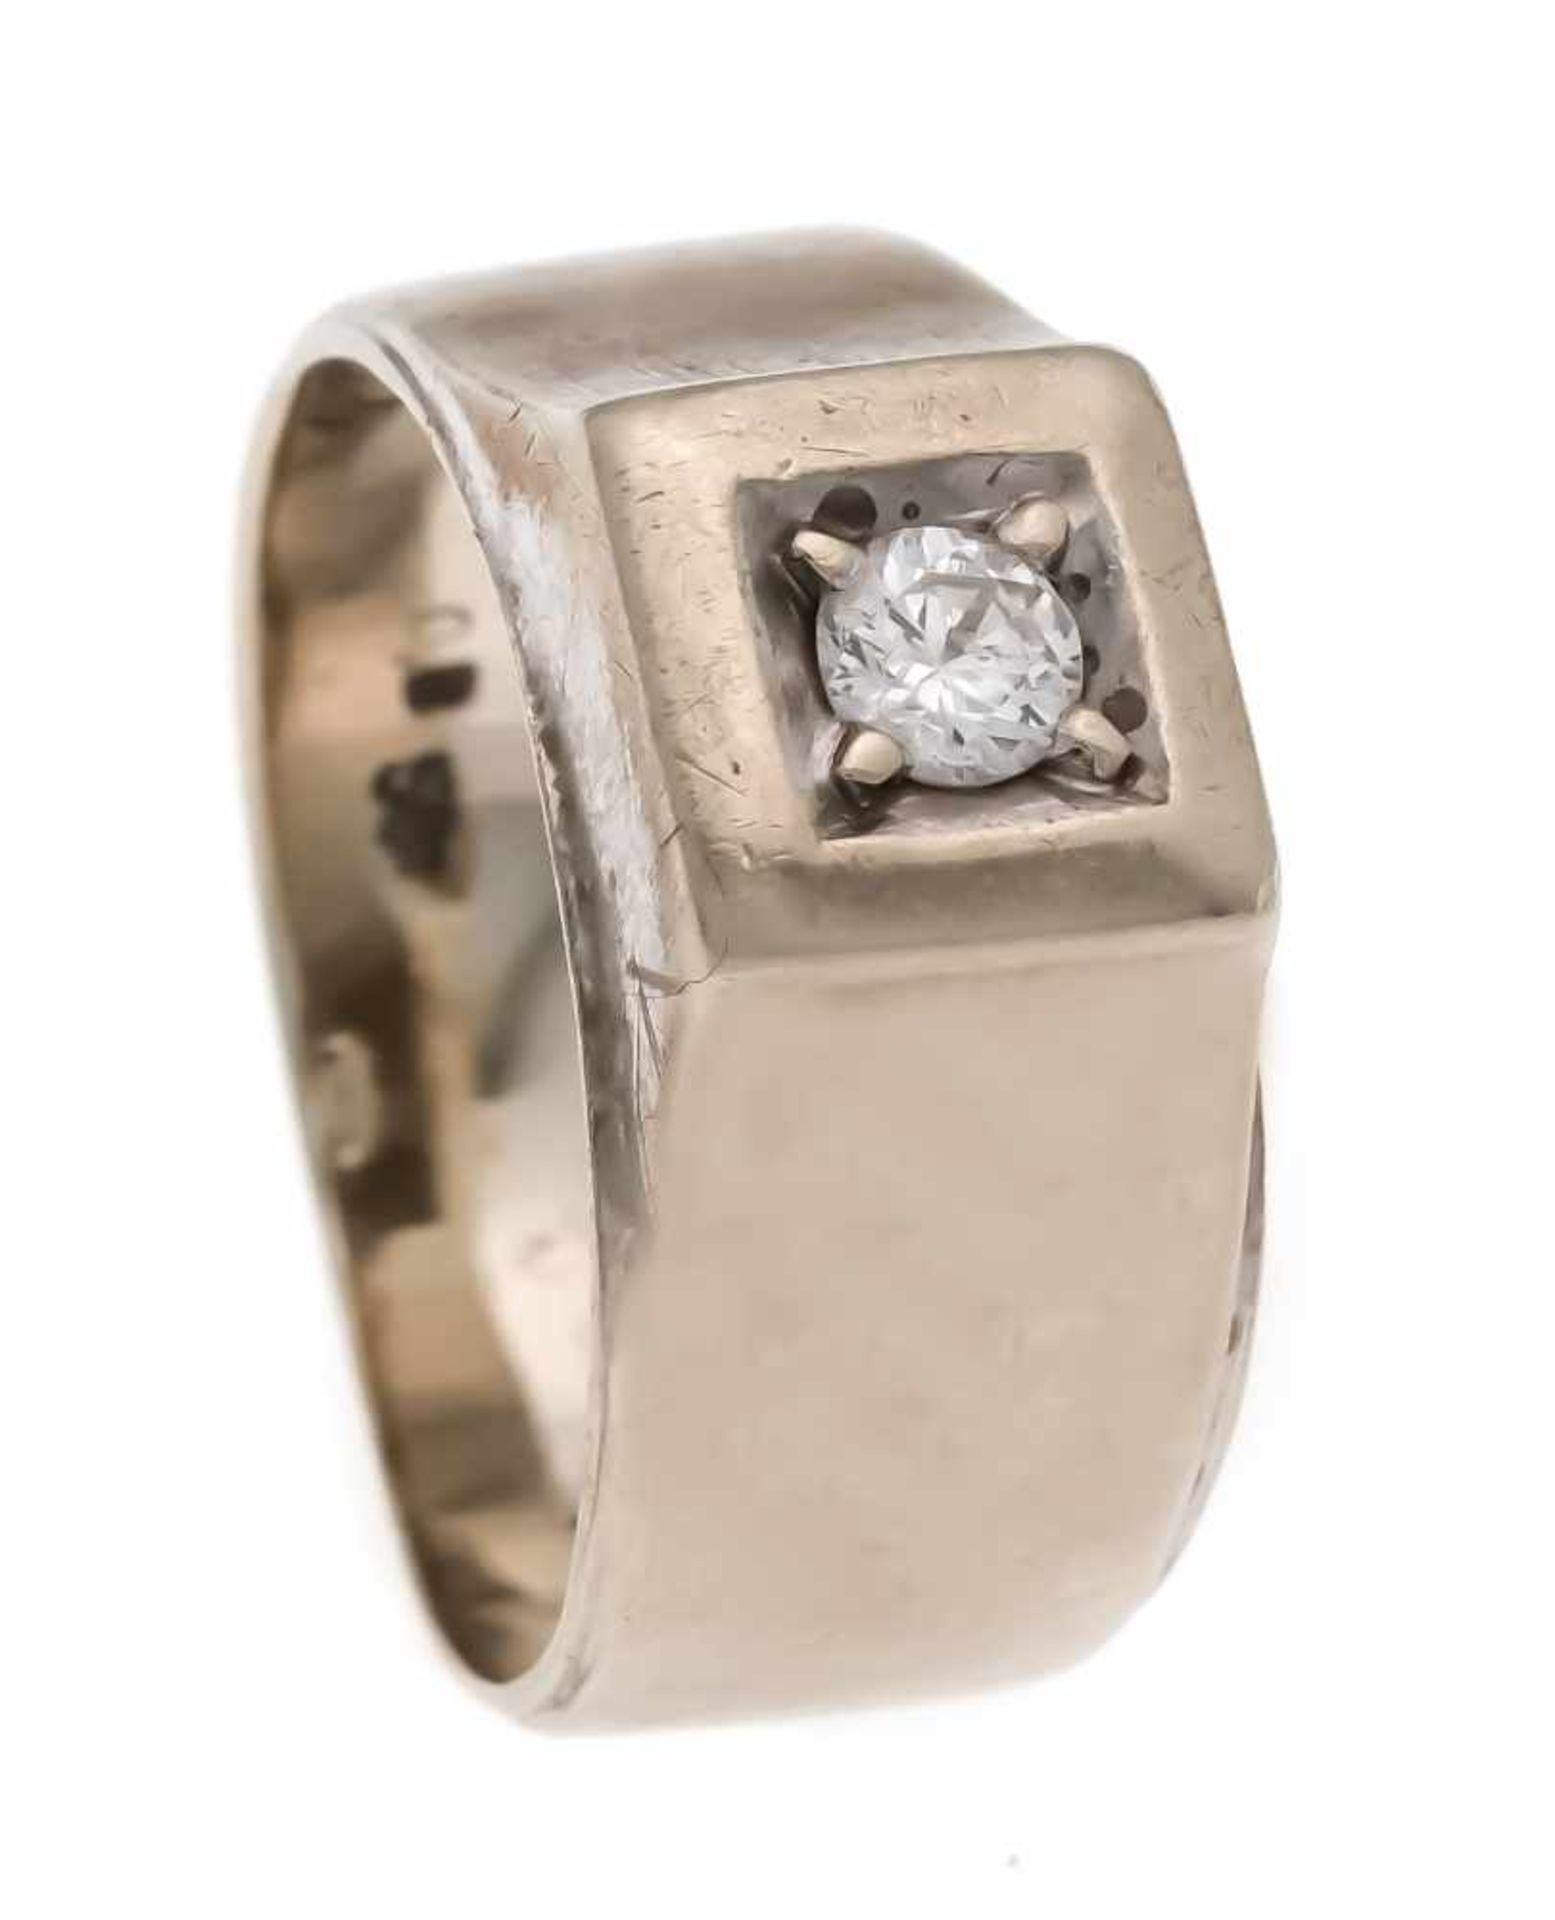 Brillant-Ring WG 585/000 mit einem Brillanten 0,12 ct W/SI, RG 47, 4,0 gBrilliant ring WG 585/000